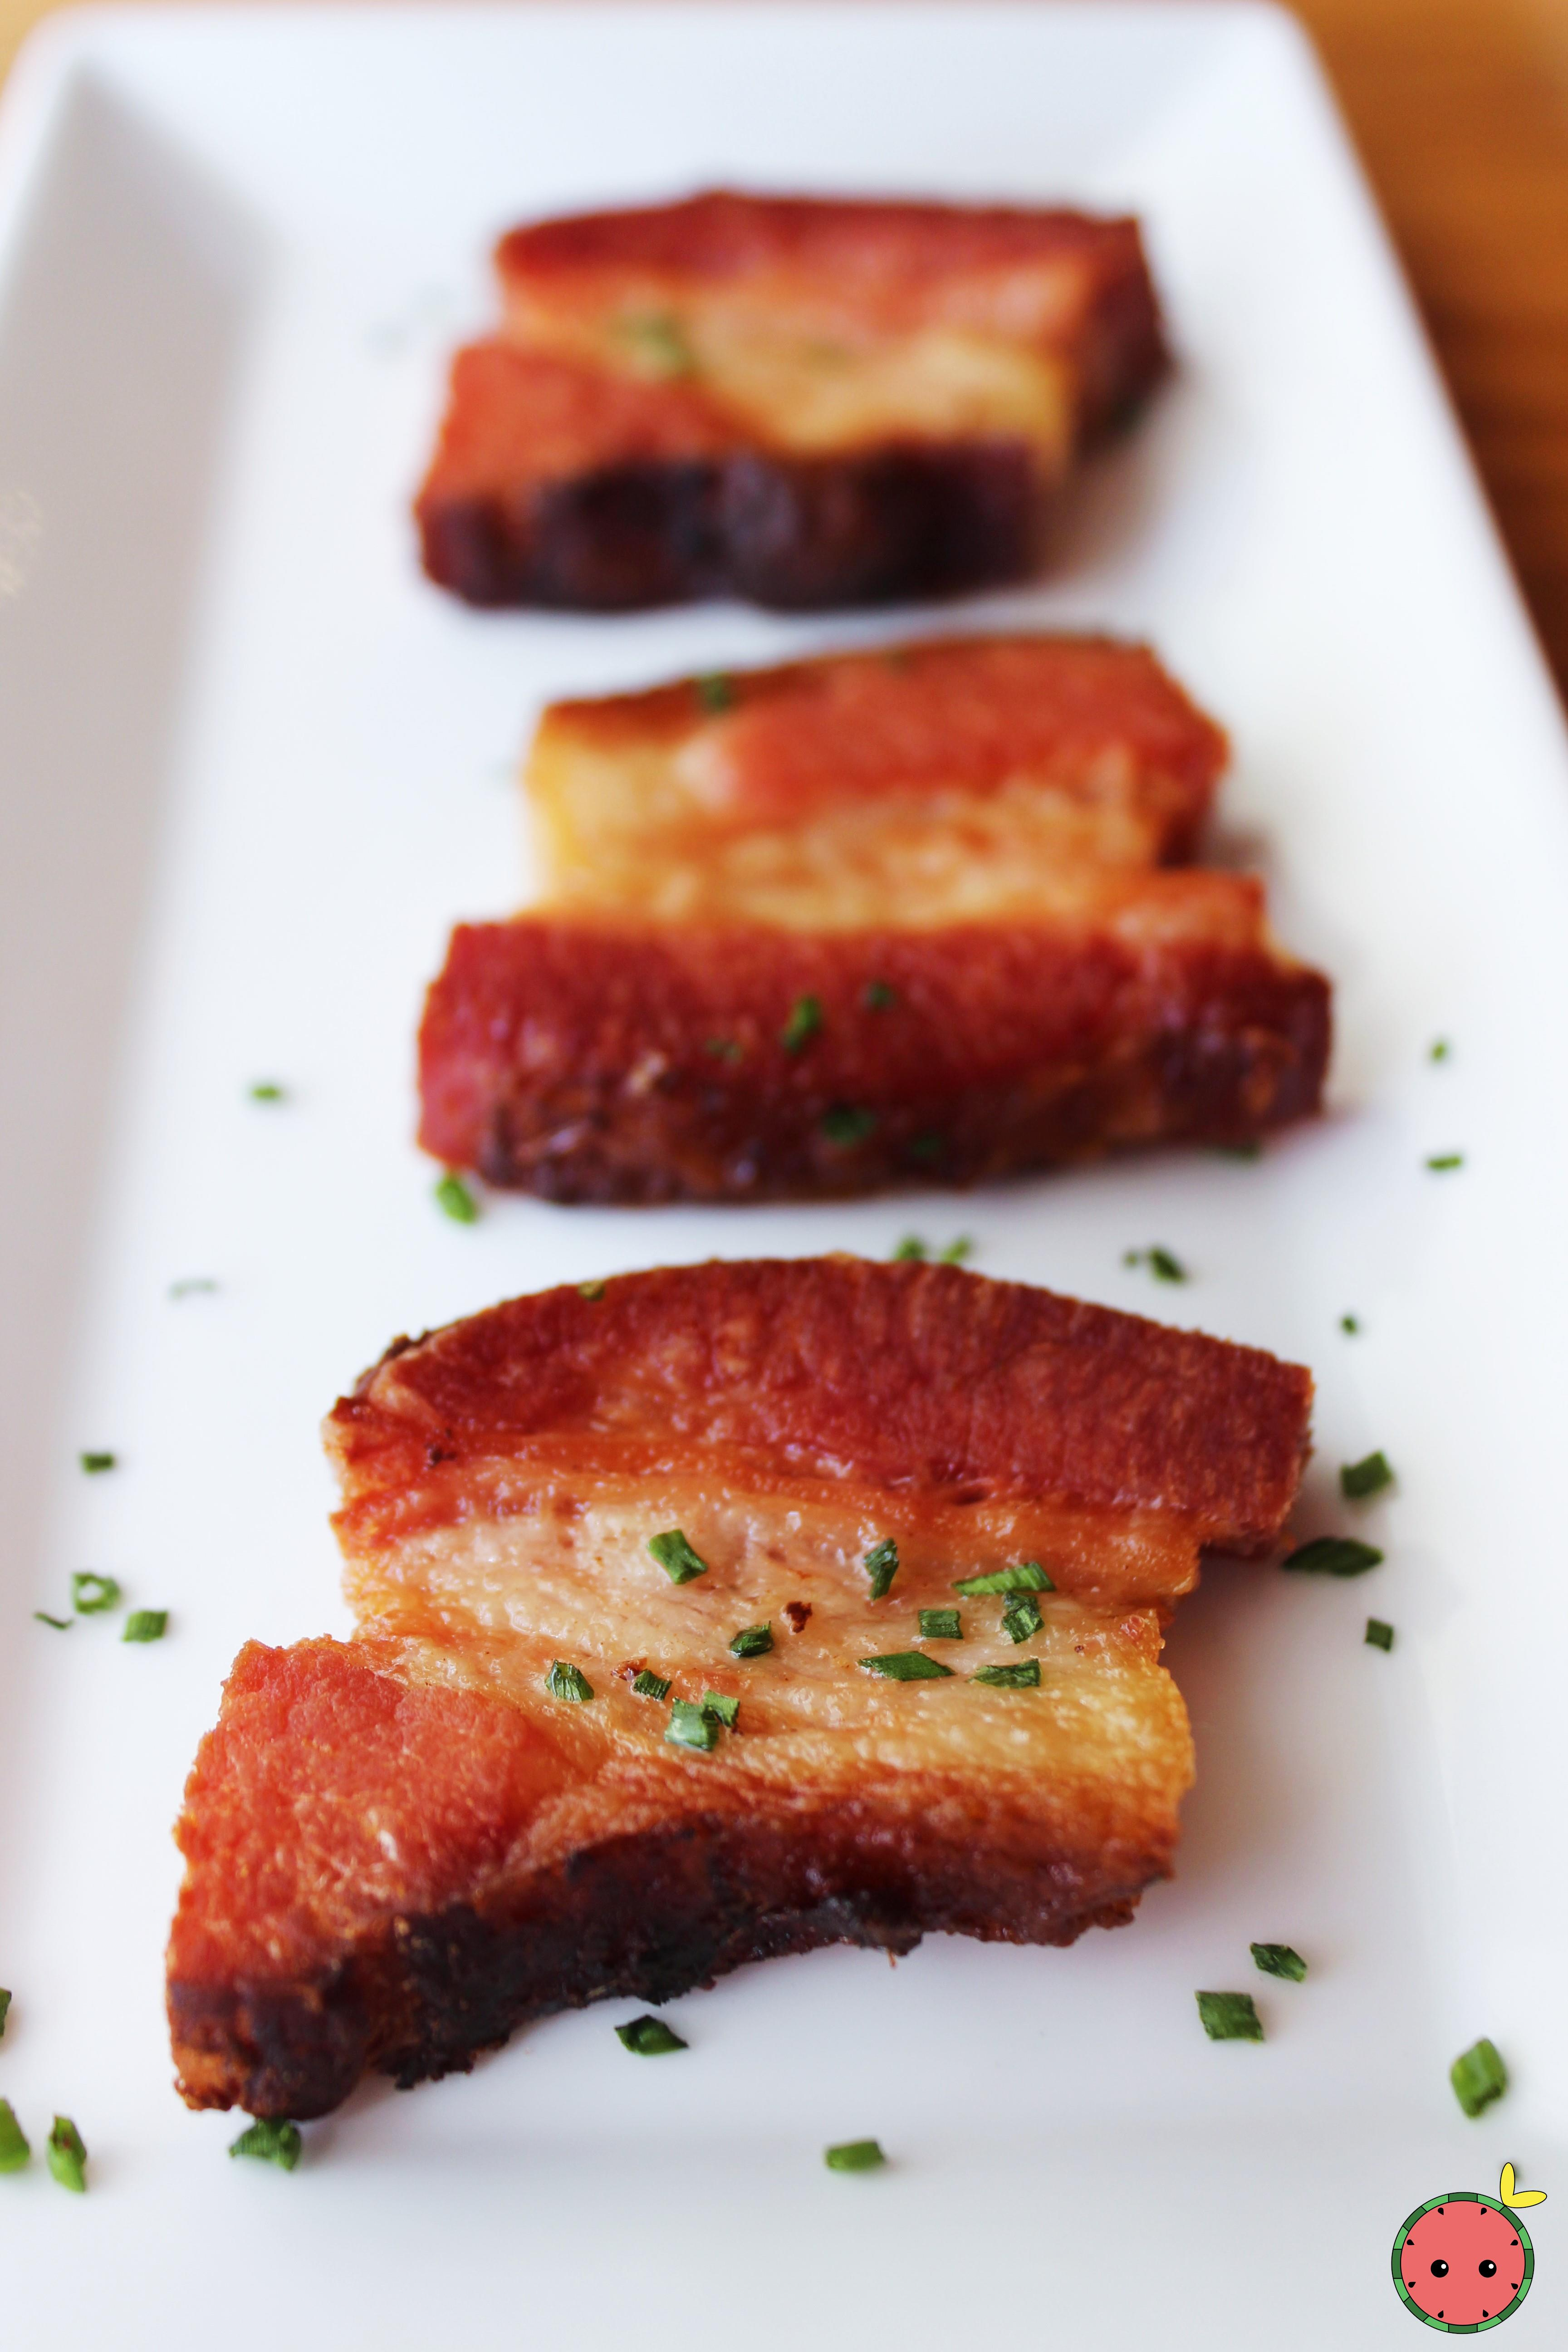 Bacon - House-cured & smoked pork belly